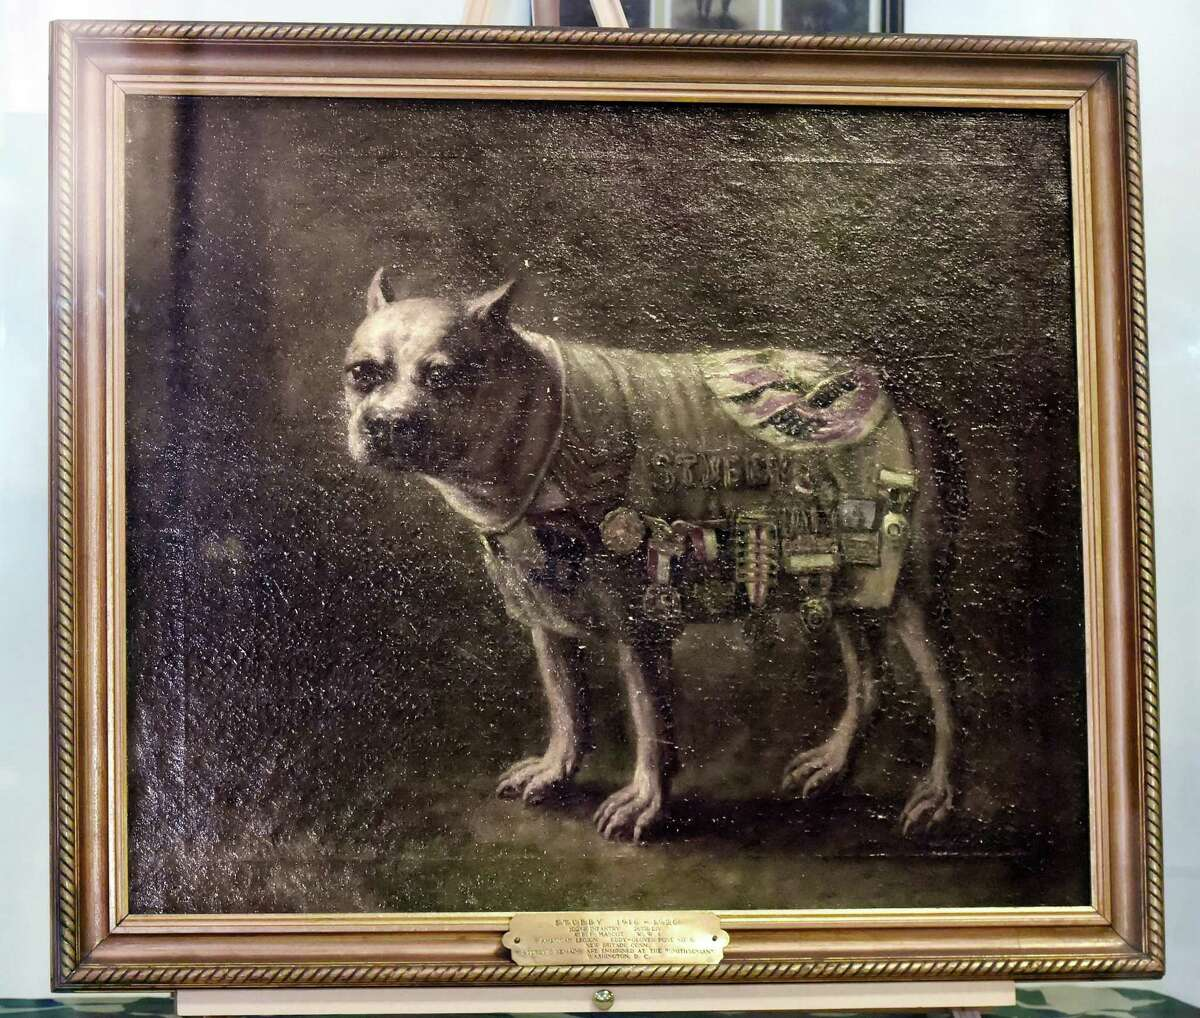 A portrait of the canine war hero, Sgt. Stubby, painted in 1926 by Charles Ayer Whipple on exhibit at the West Haven Veterans Museum & Learning Center.